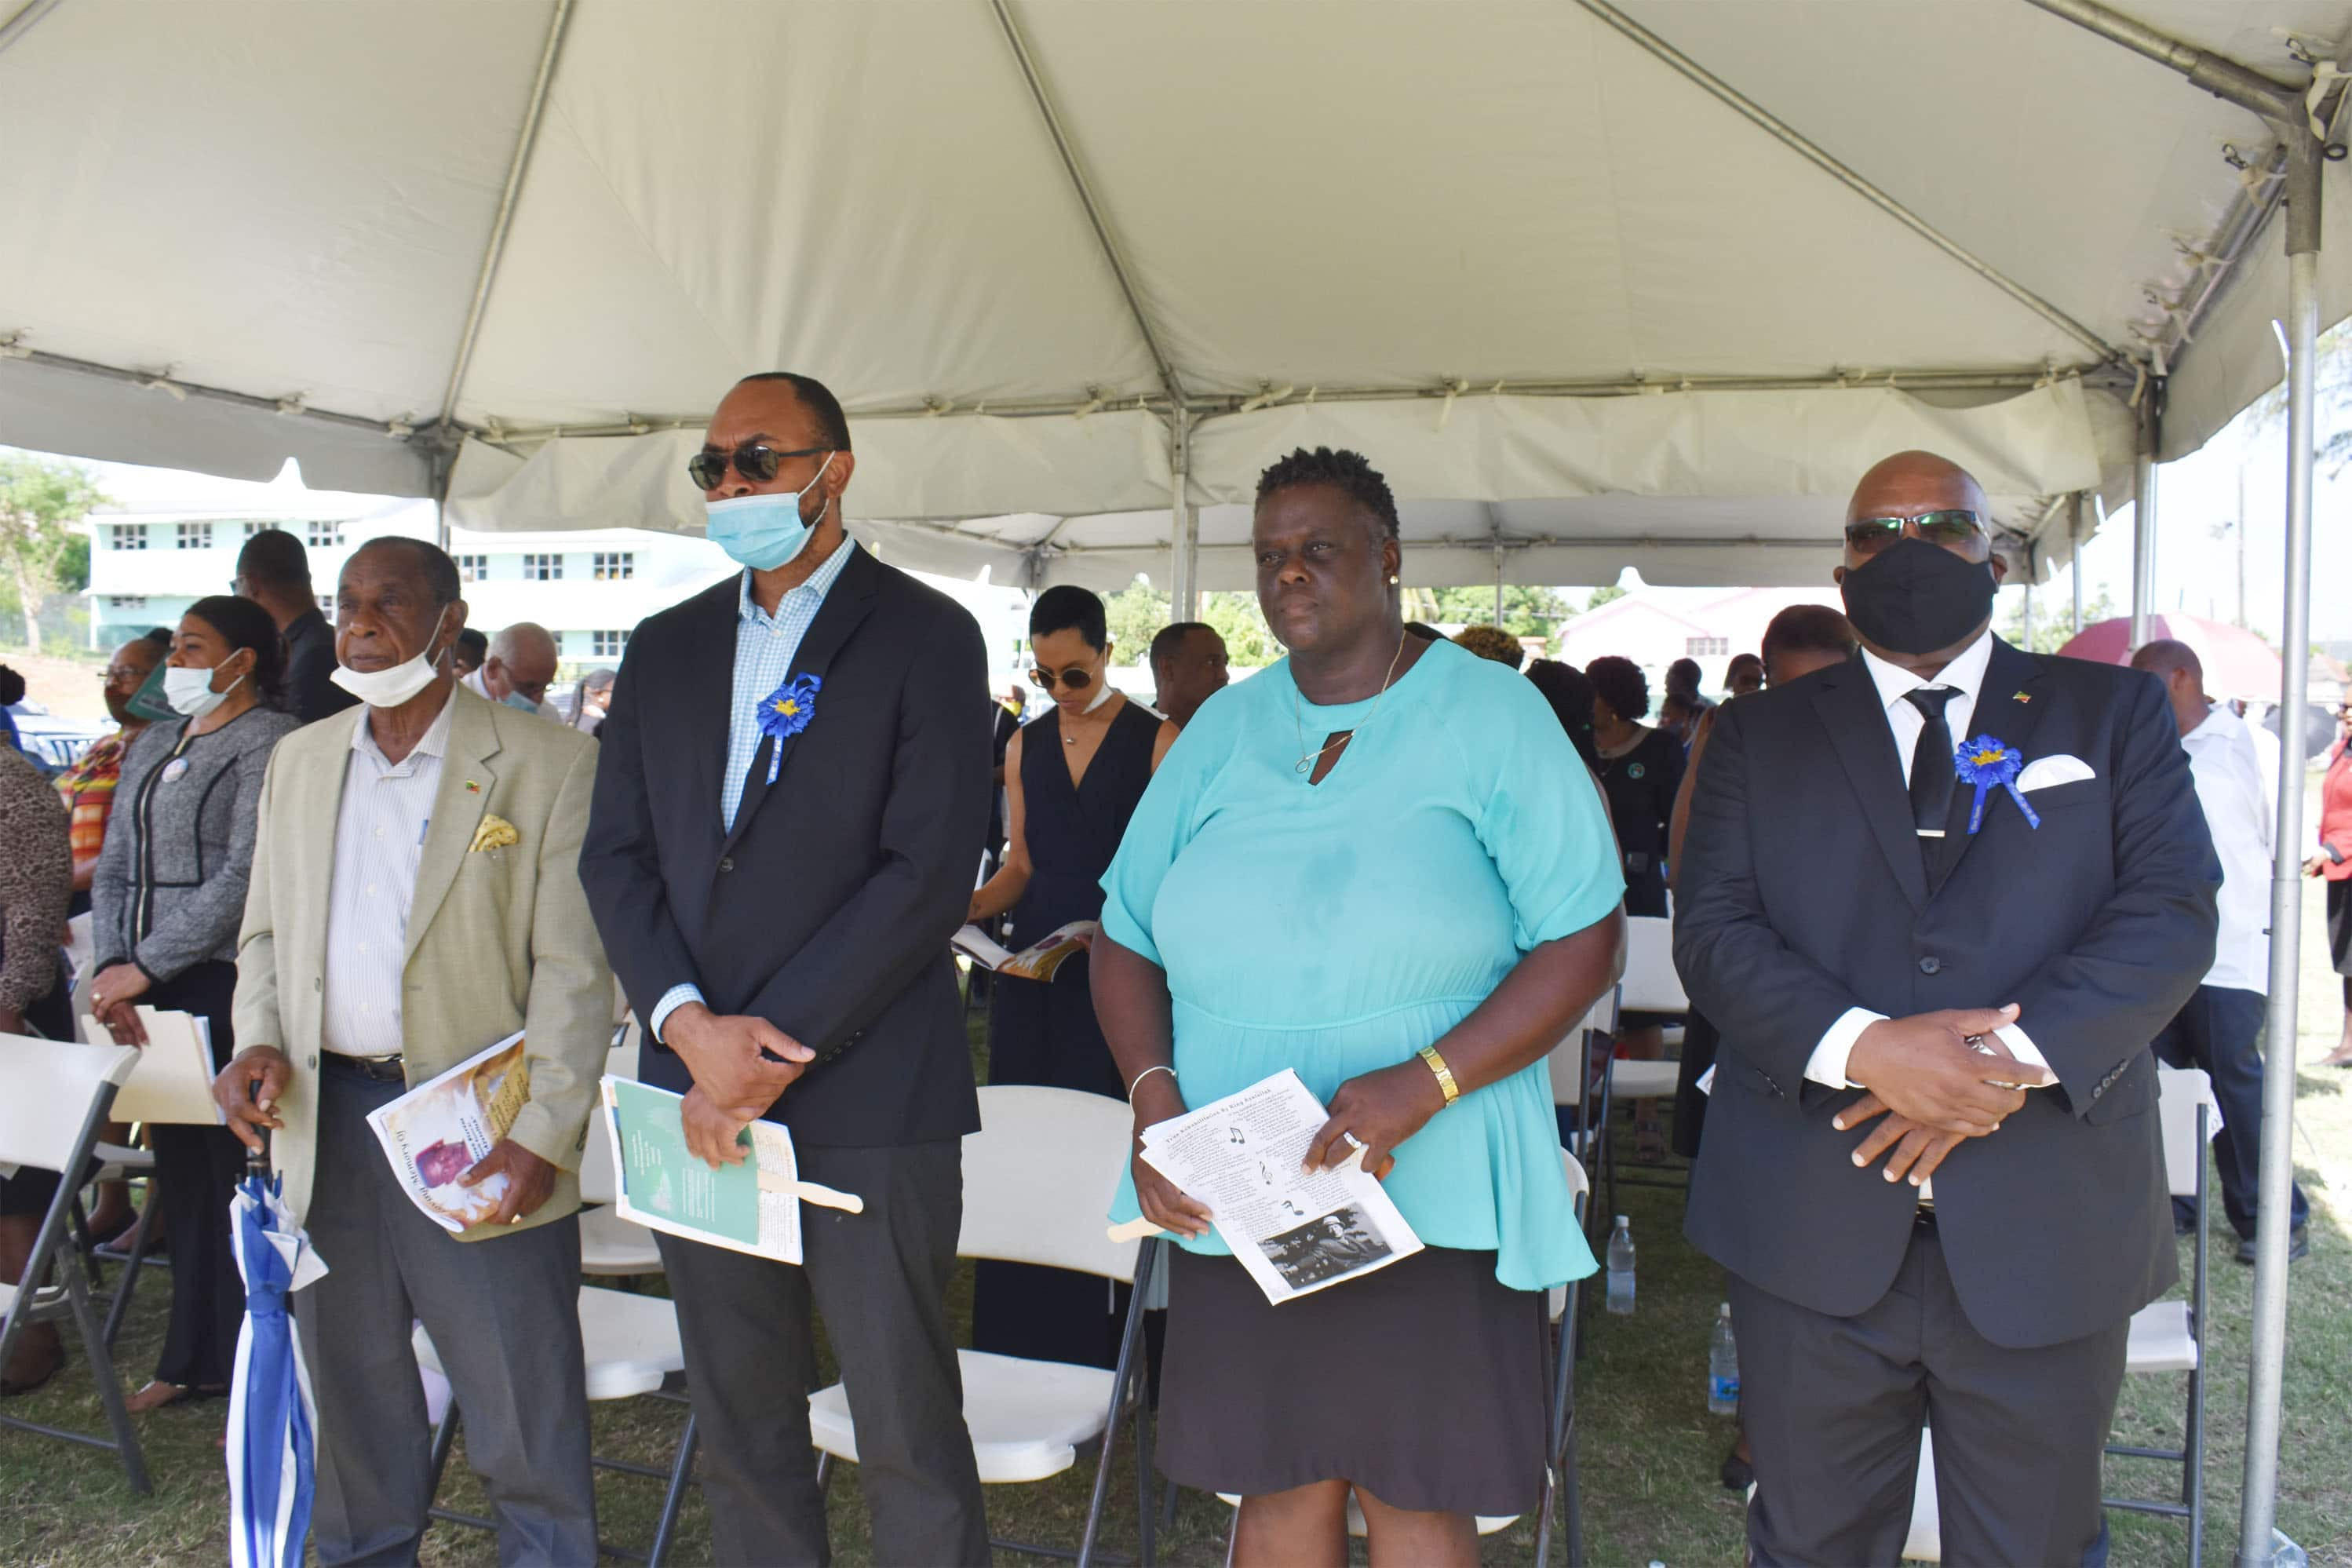 Prime Minister Harris, right, with Ms Verlyn Warner, the Hon Jonel Powell, and Mr Stanley Franks during the funeral service held at the Garden's Playfield.